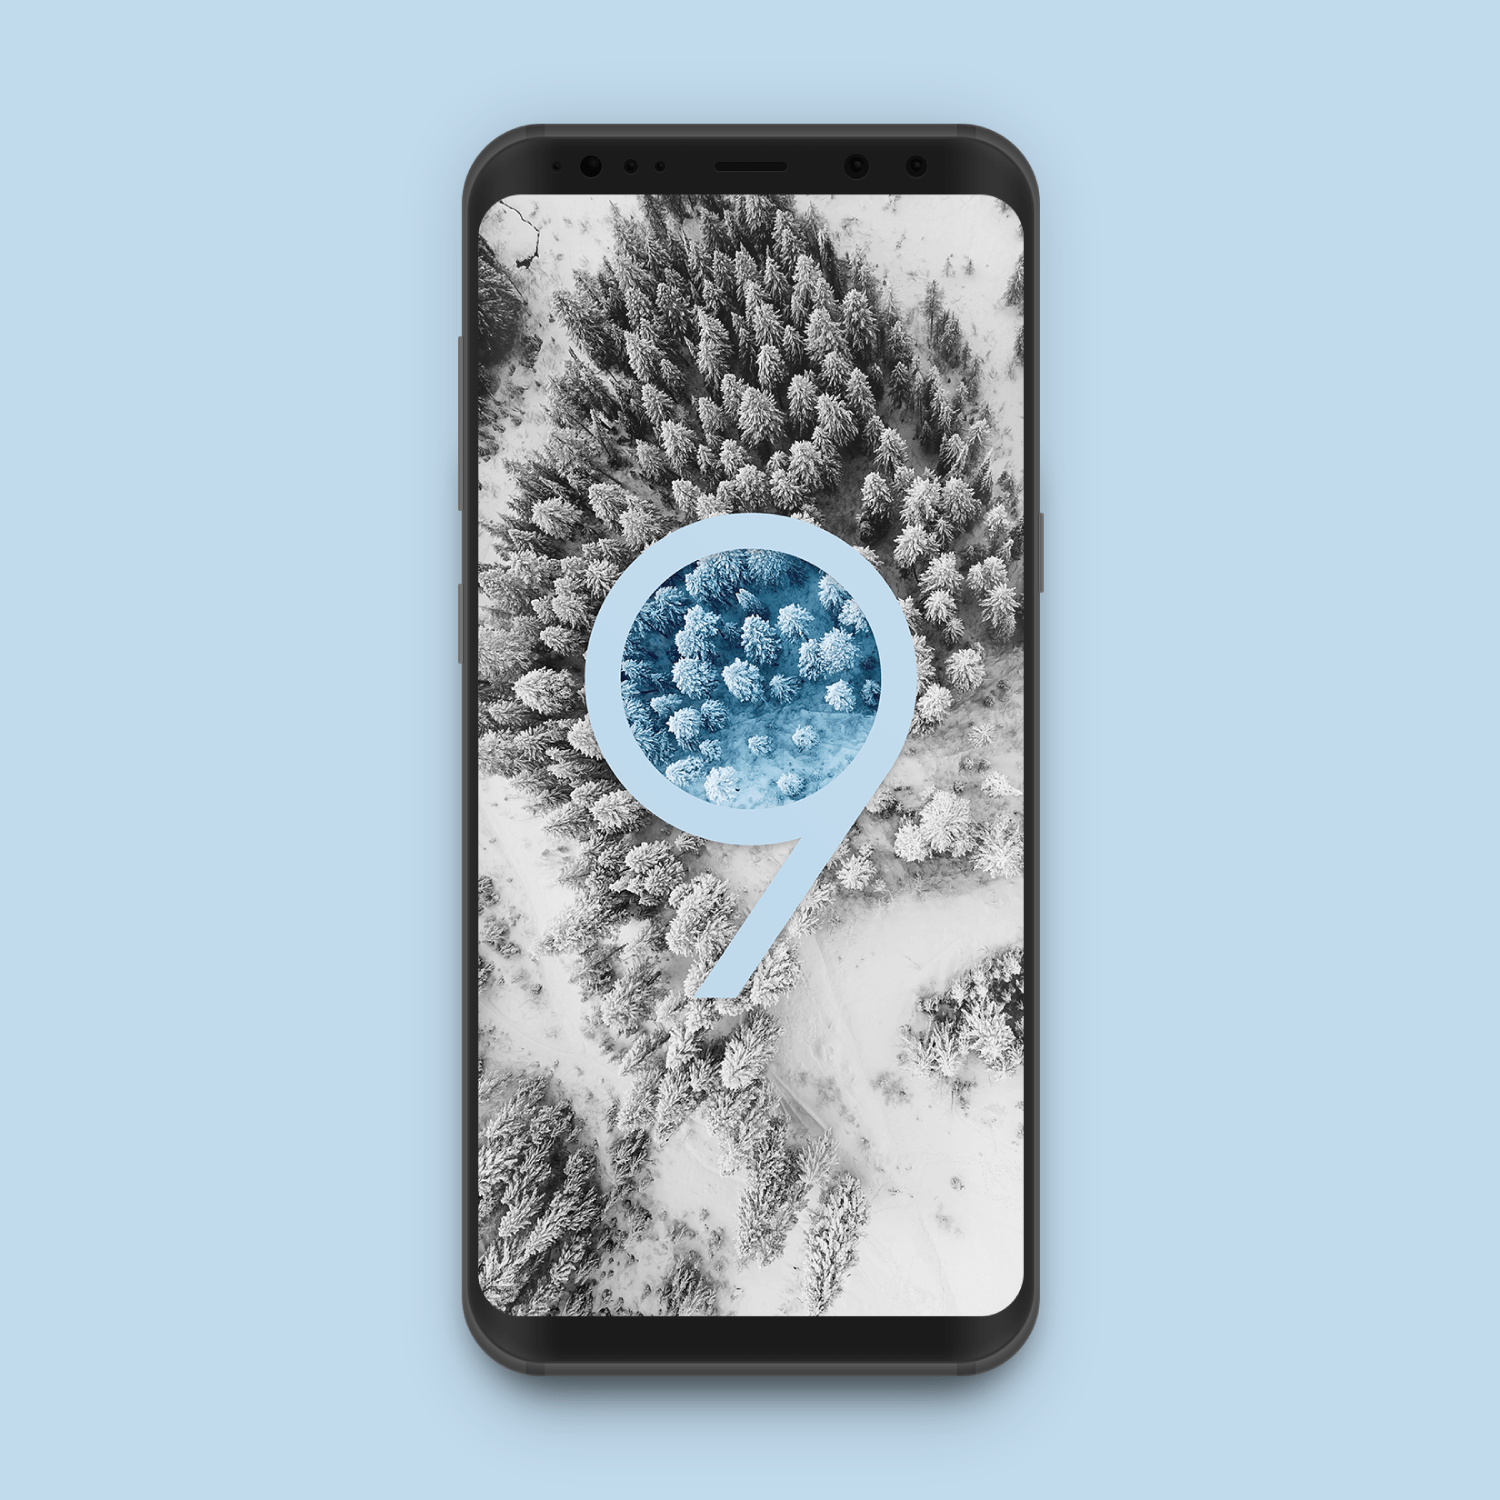 Samsung Galaxy S9 – Wallpapers